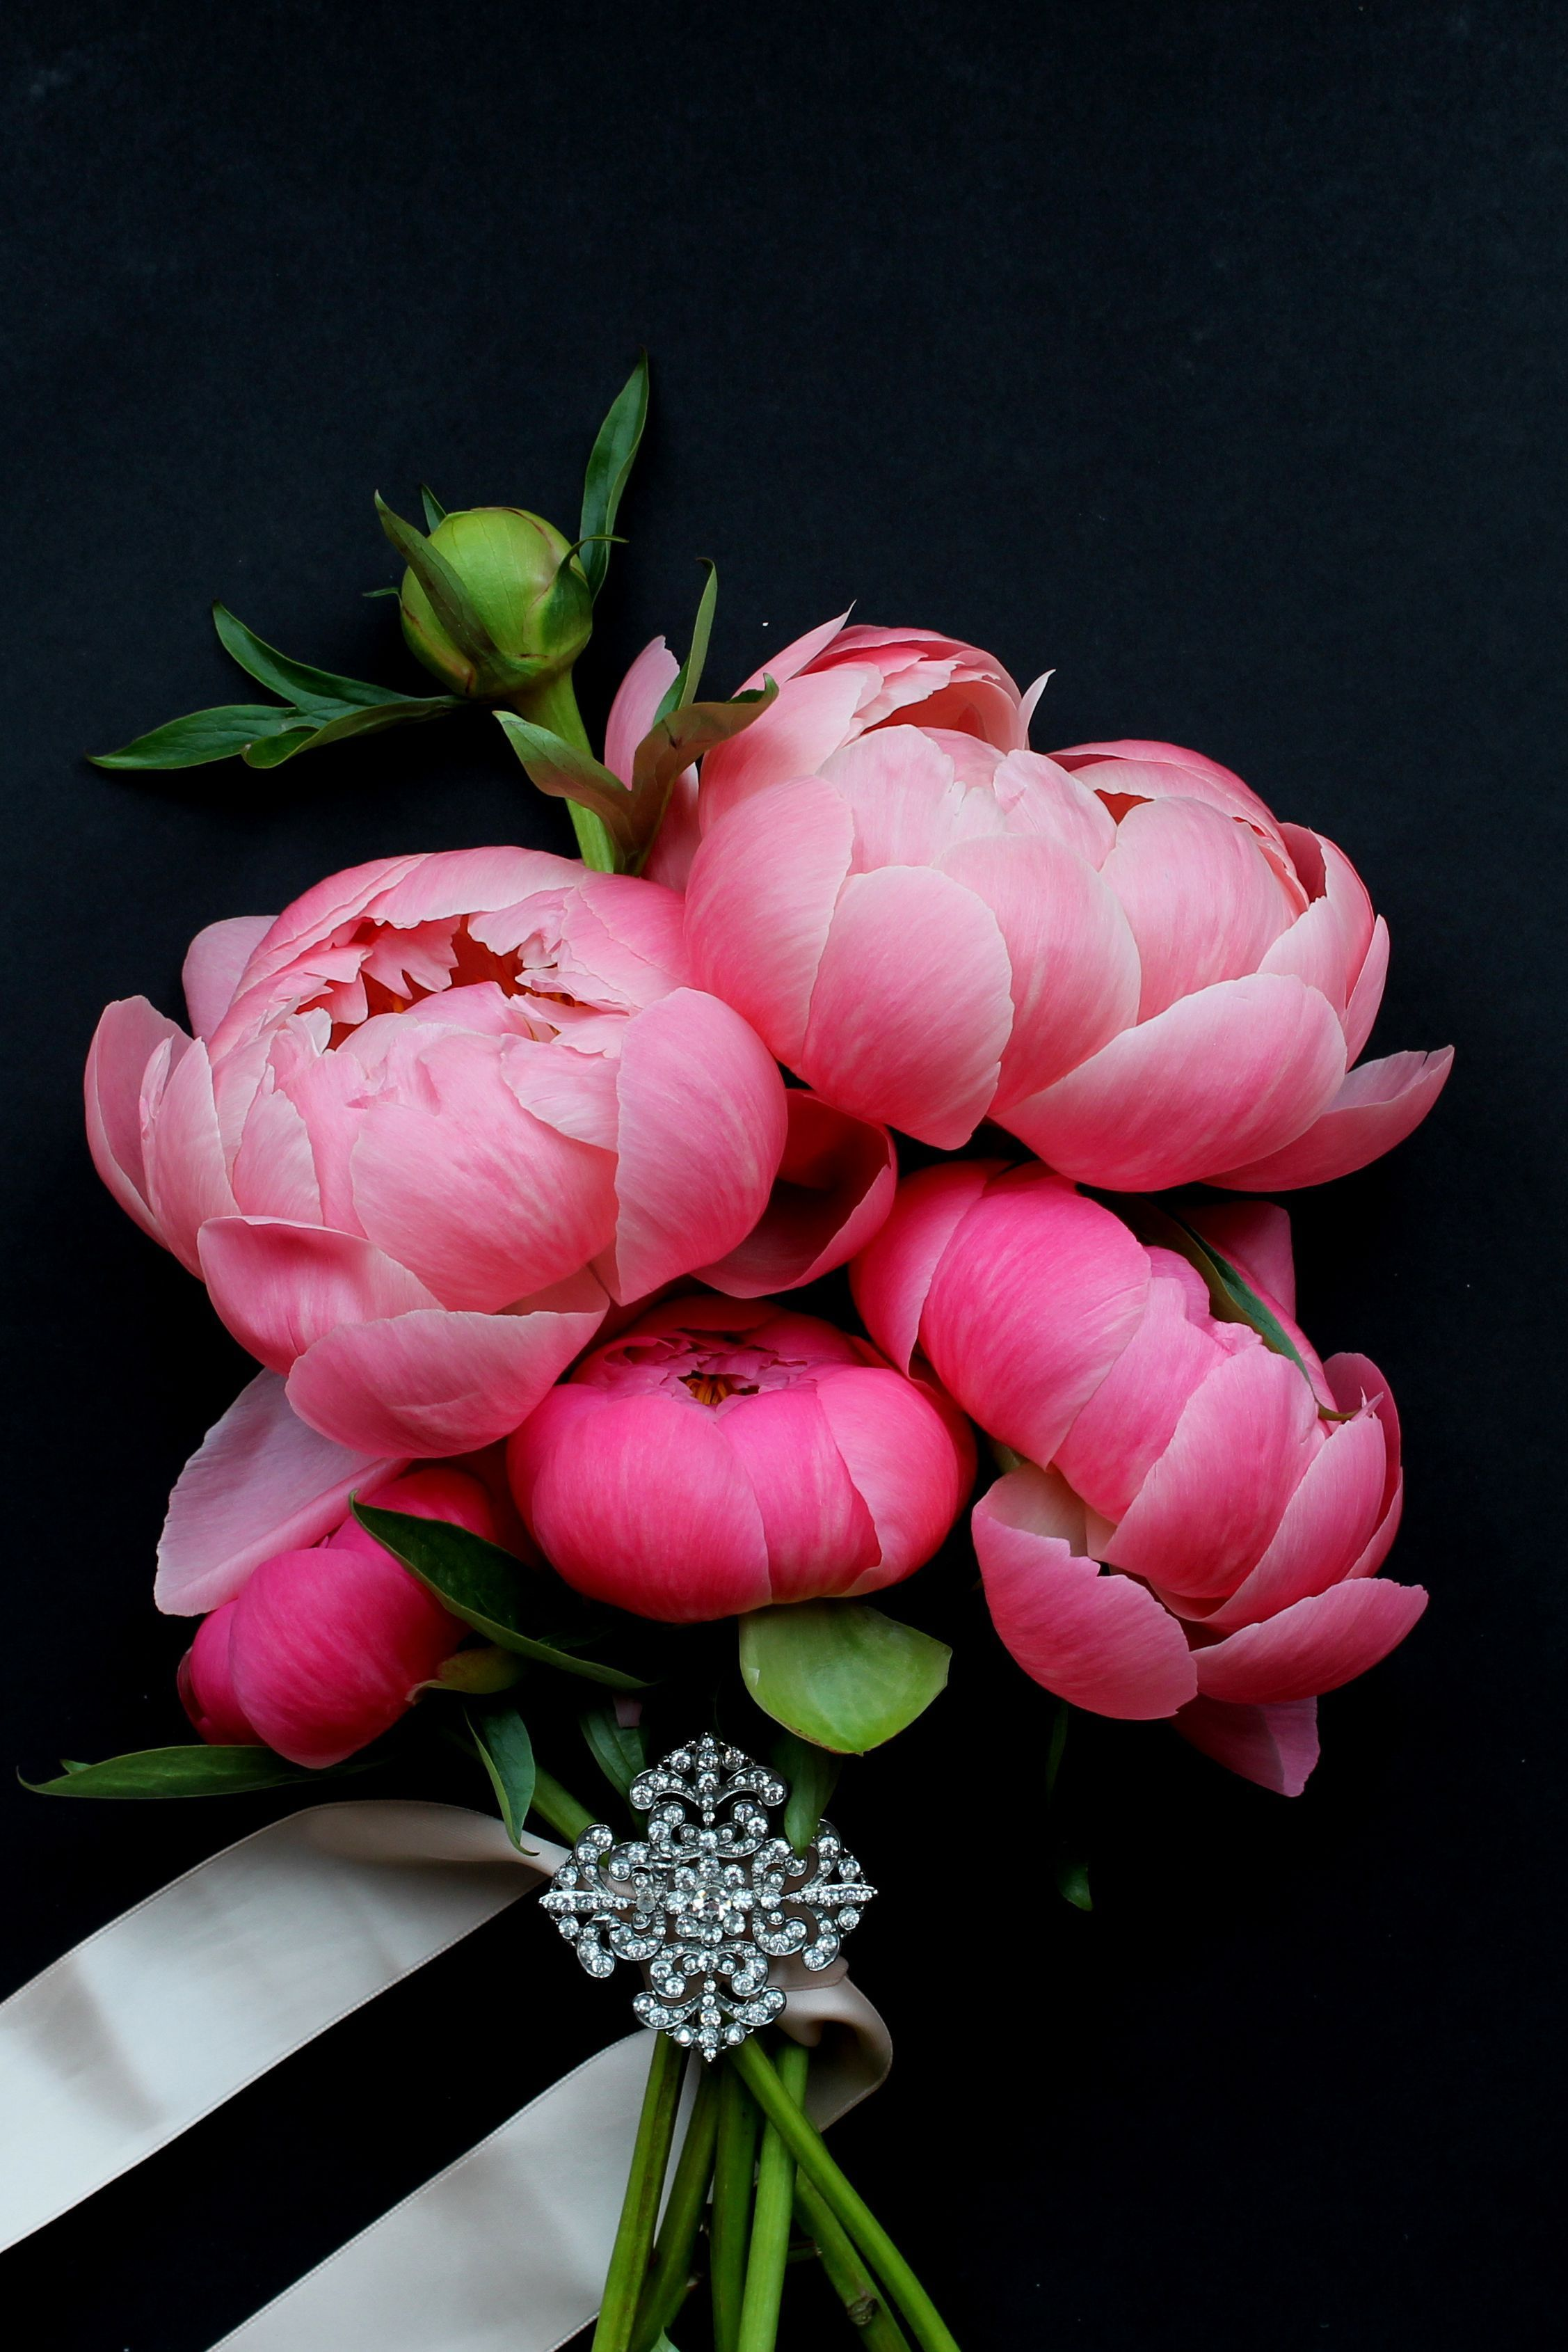 The Most Beautiful Peonies Flower Flowerarrangment Floral Floralstyling Beauty Natura Flowers Photography Peonies Beautiful Flowers Flowers Photography